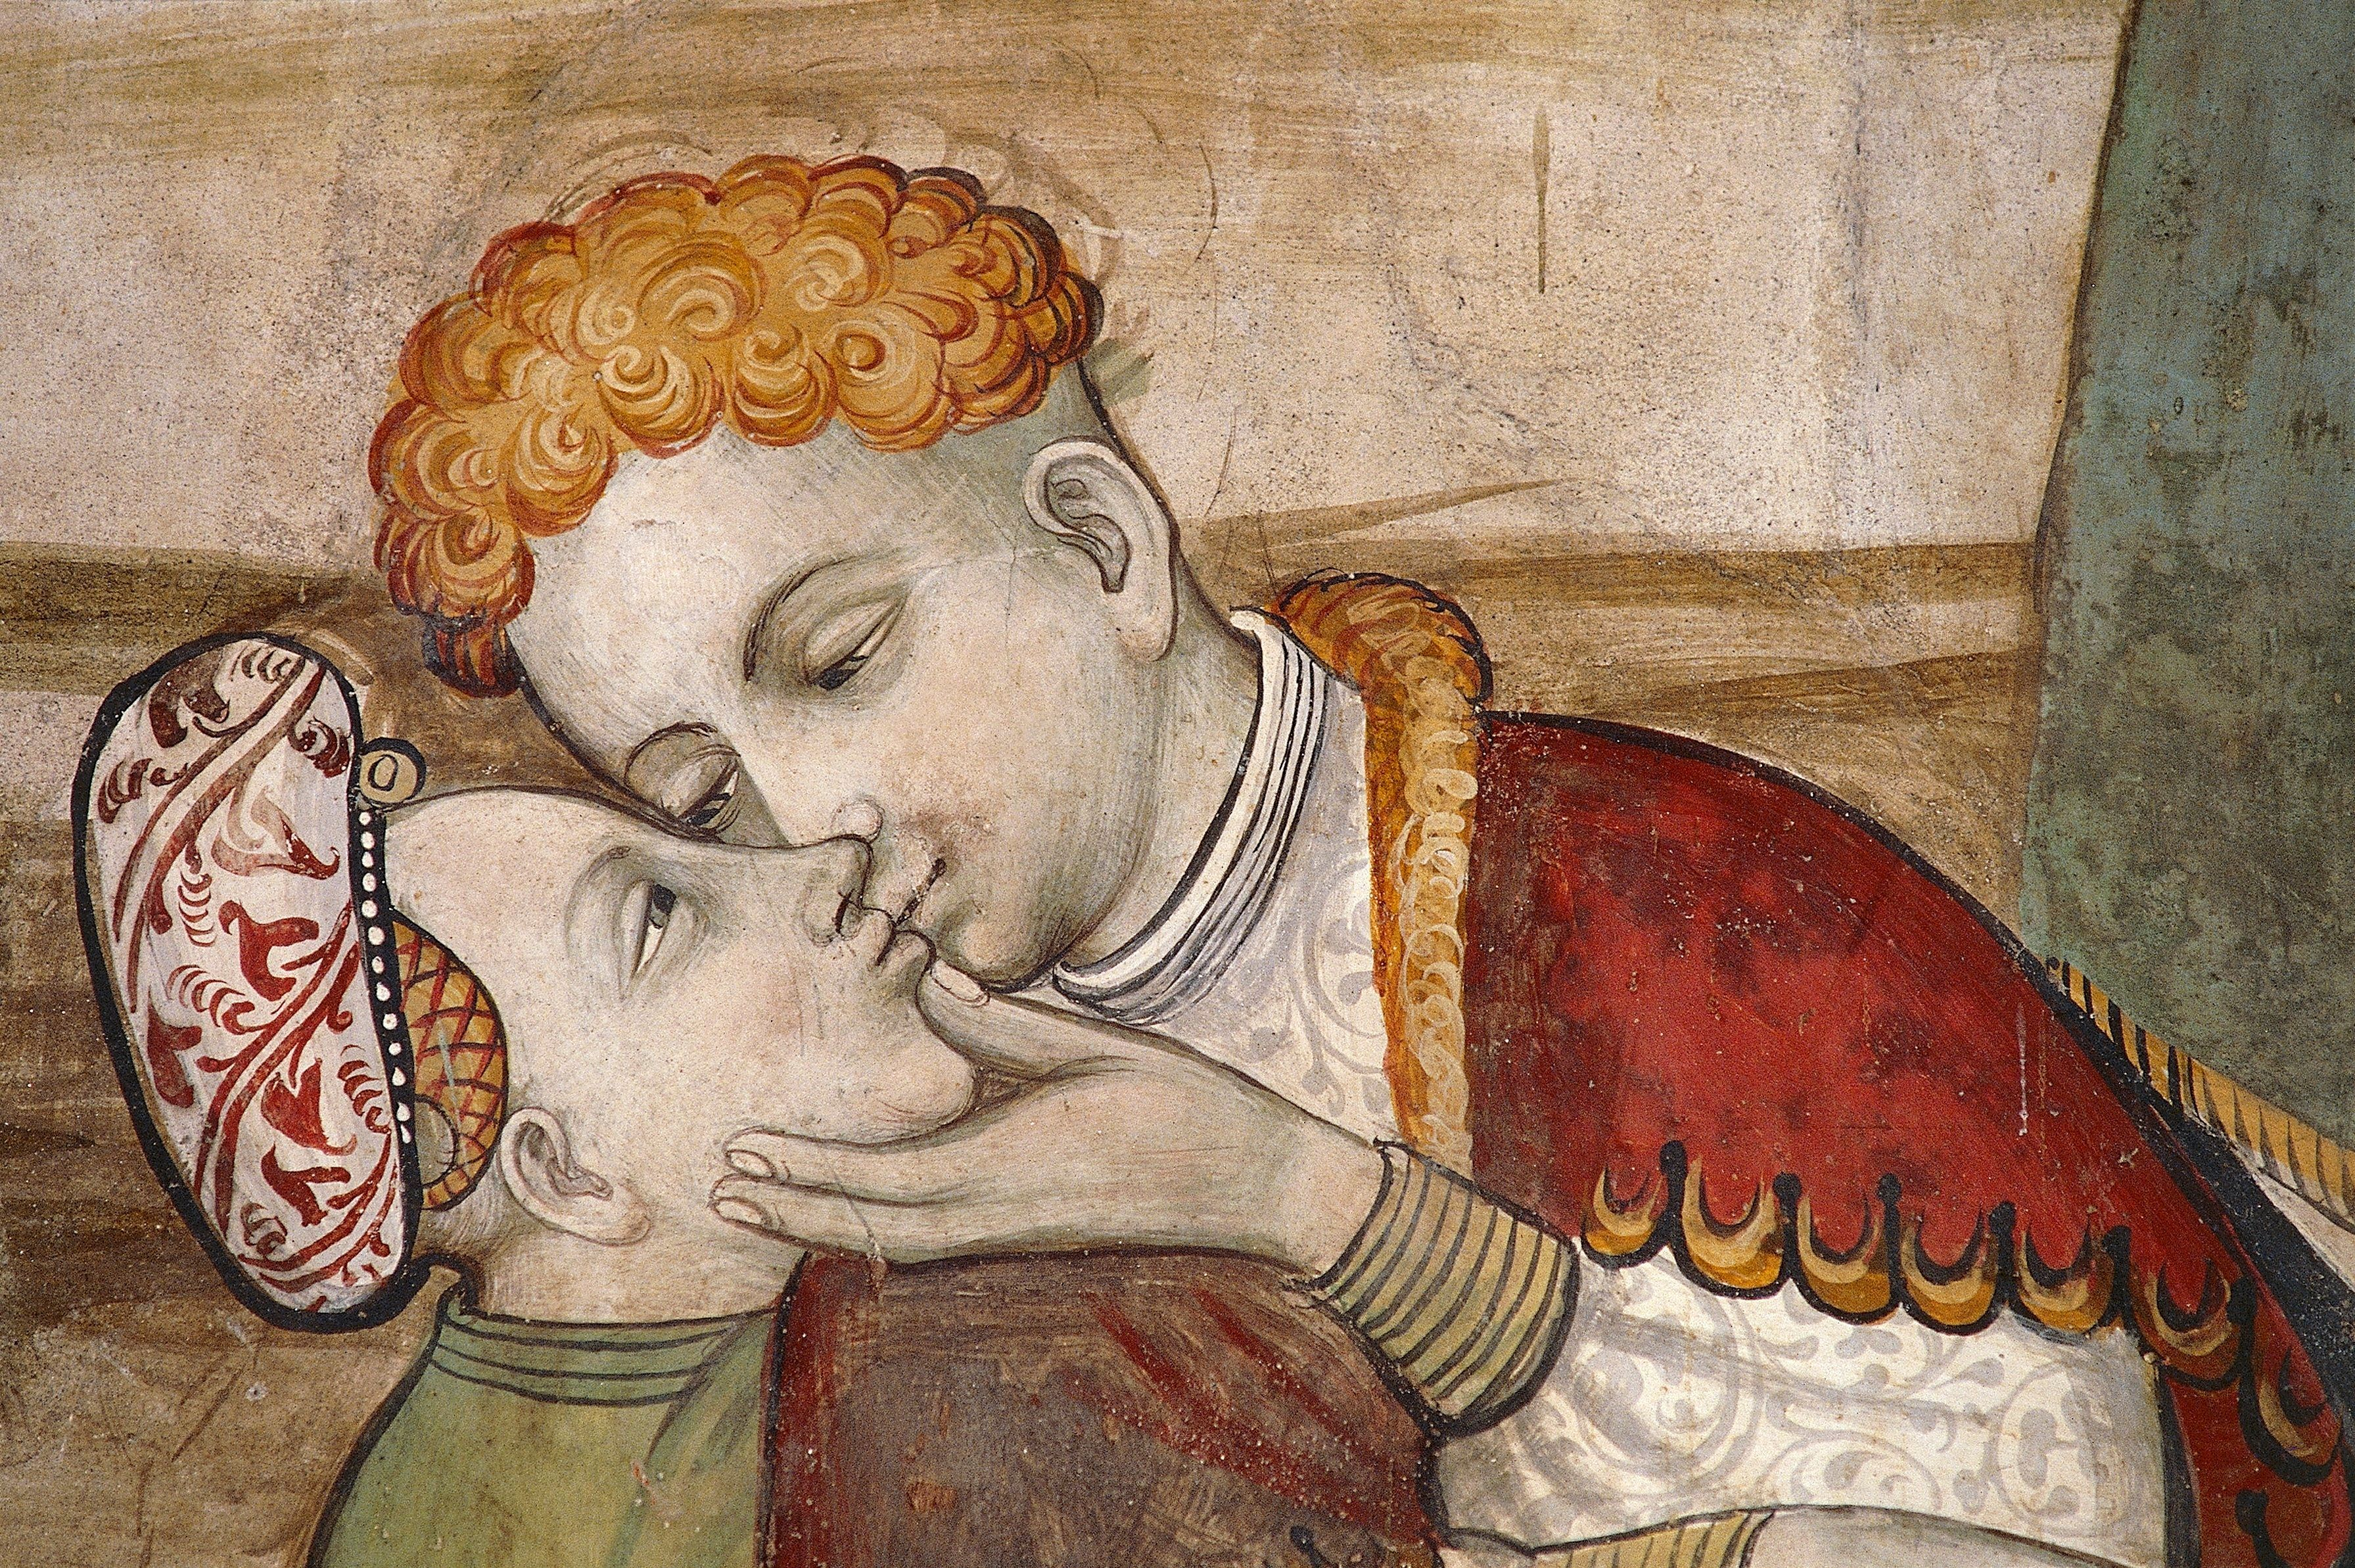 Italian frescoes that date from around the 15th century. Don't get too frisky,